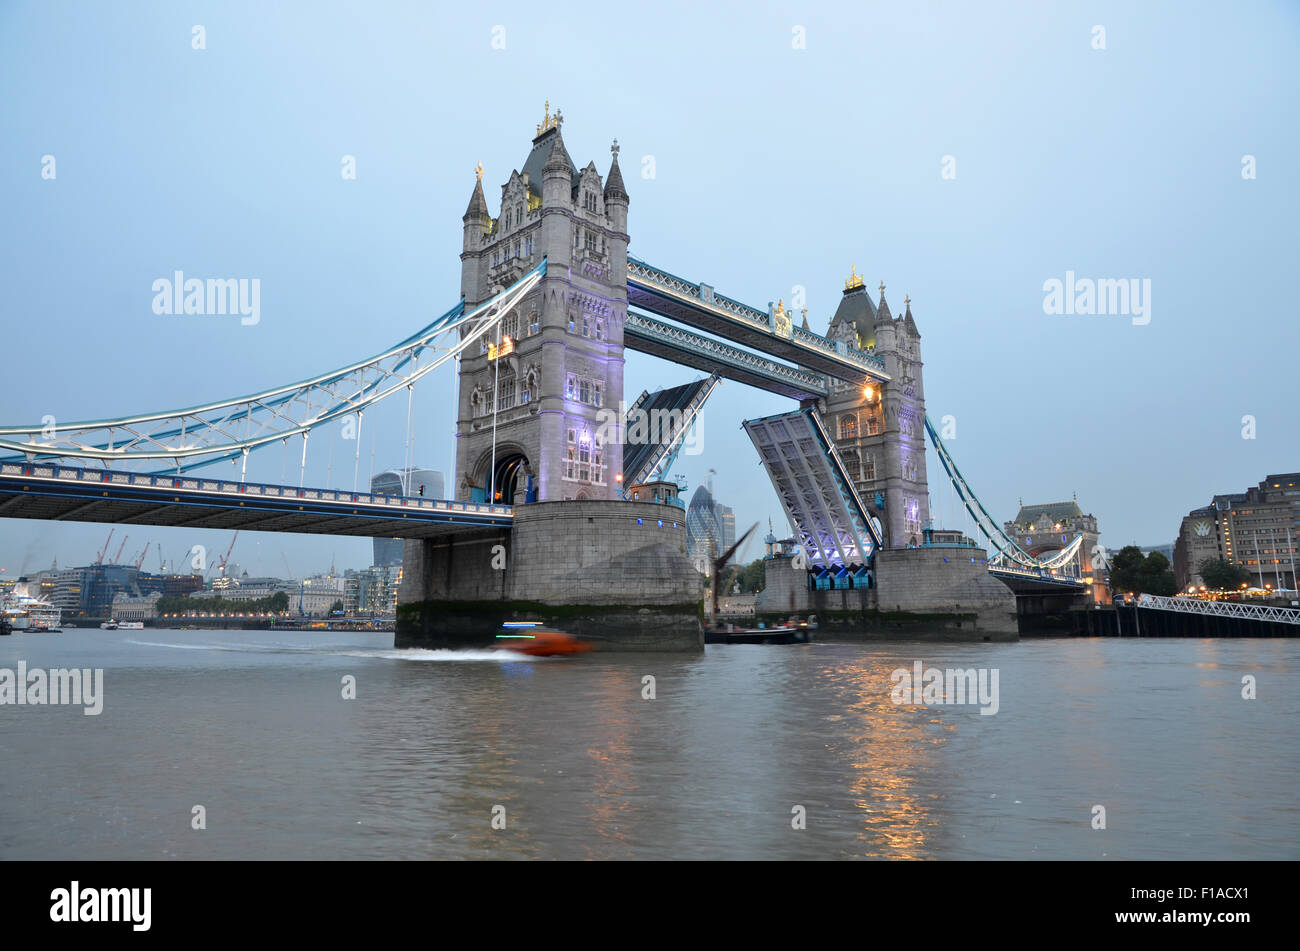 Tower Bridge, London, UK, Great Britain - Stock Image